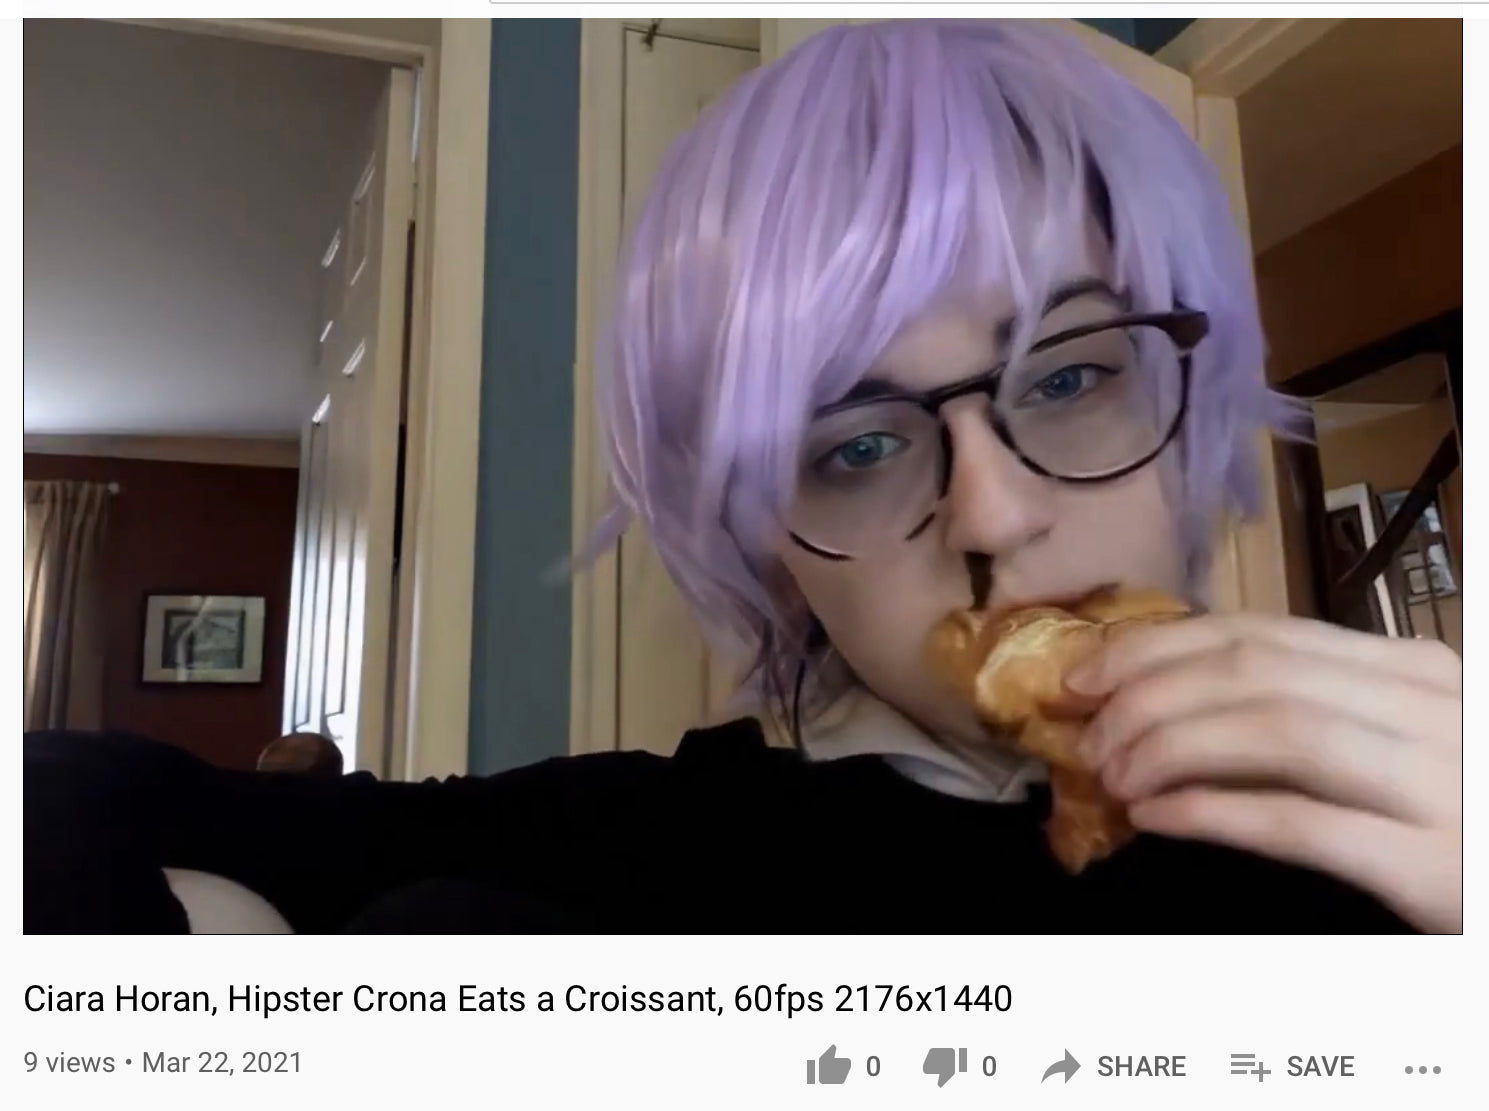 Archival material of Ciara Horan as a fancy hipster croissant-eating E-girl replete with wig and nosebleed (Photo: @angelicism01 on YouTube)